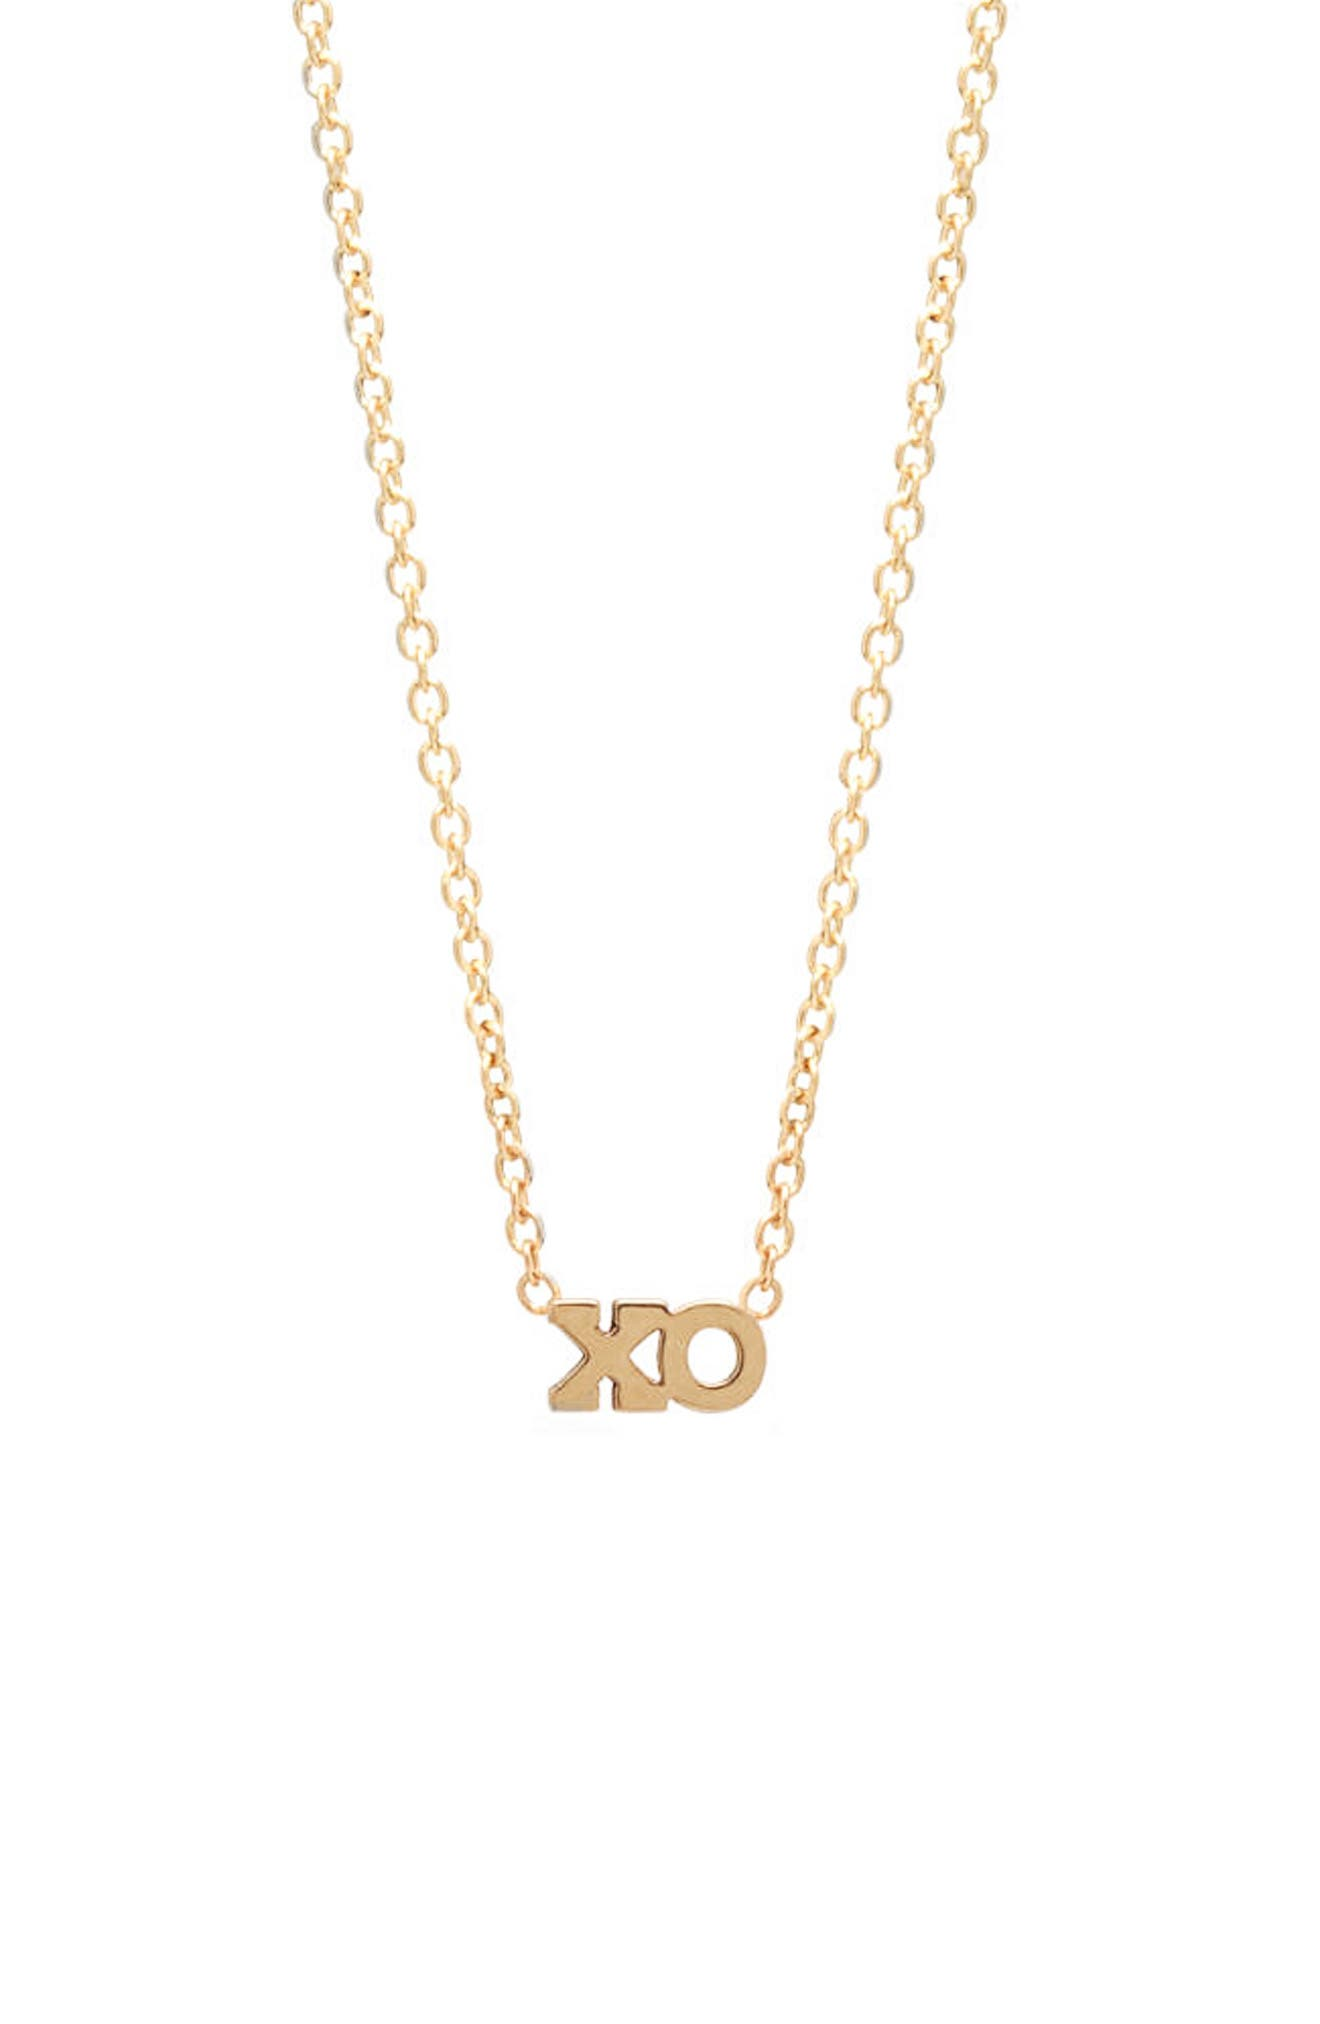 XO Pendant Necklace,                             Main thumbnail 1, color,                             YELLOW GOLD